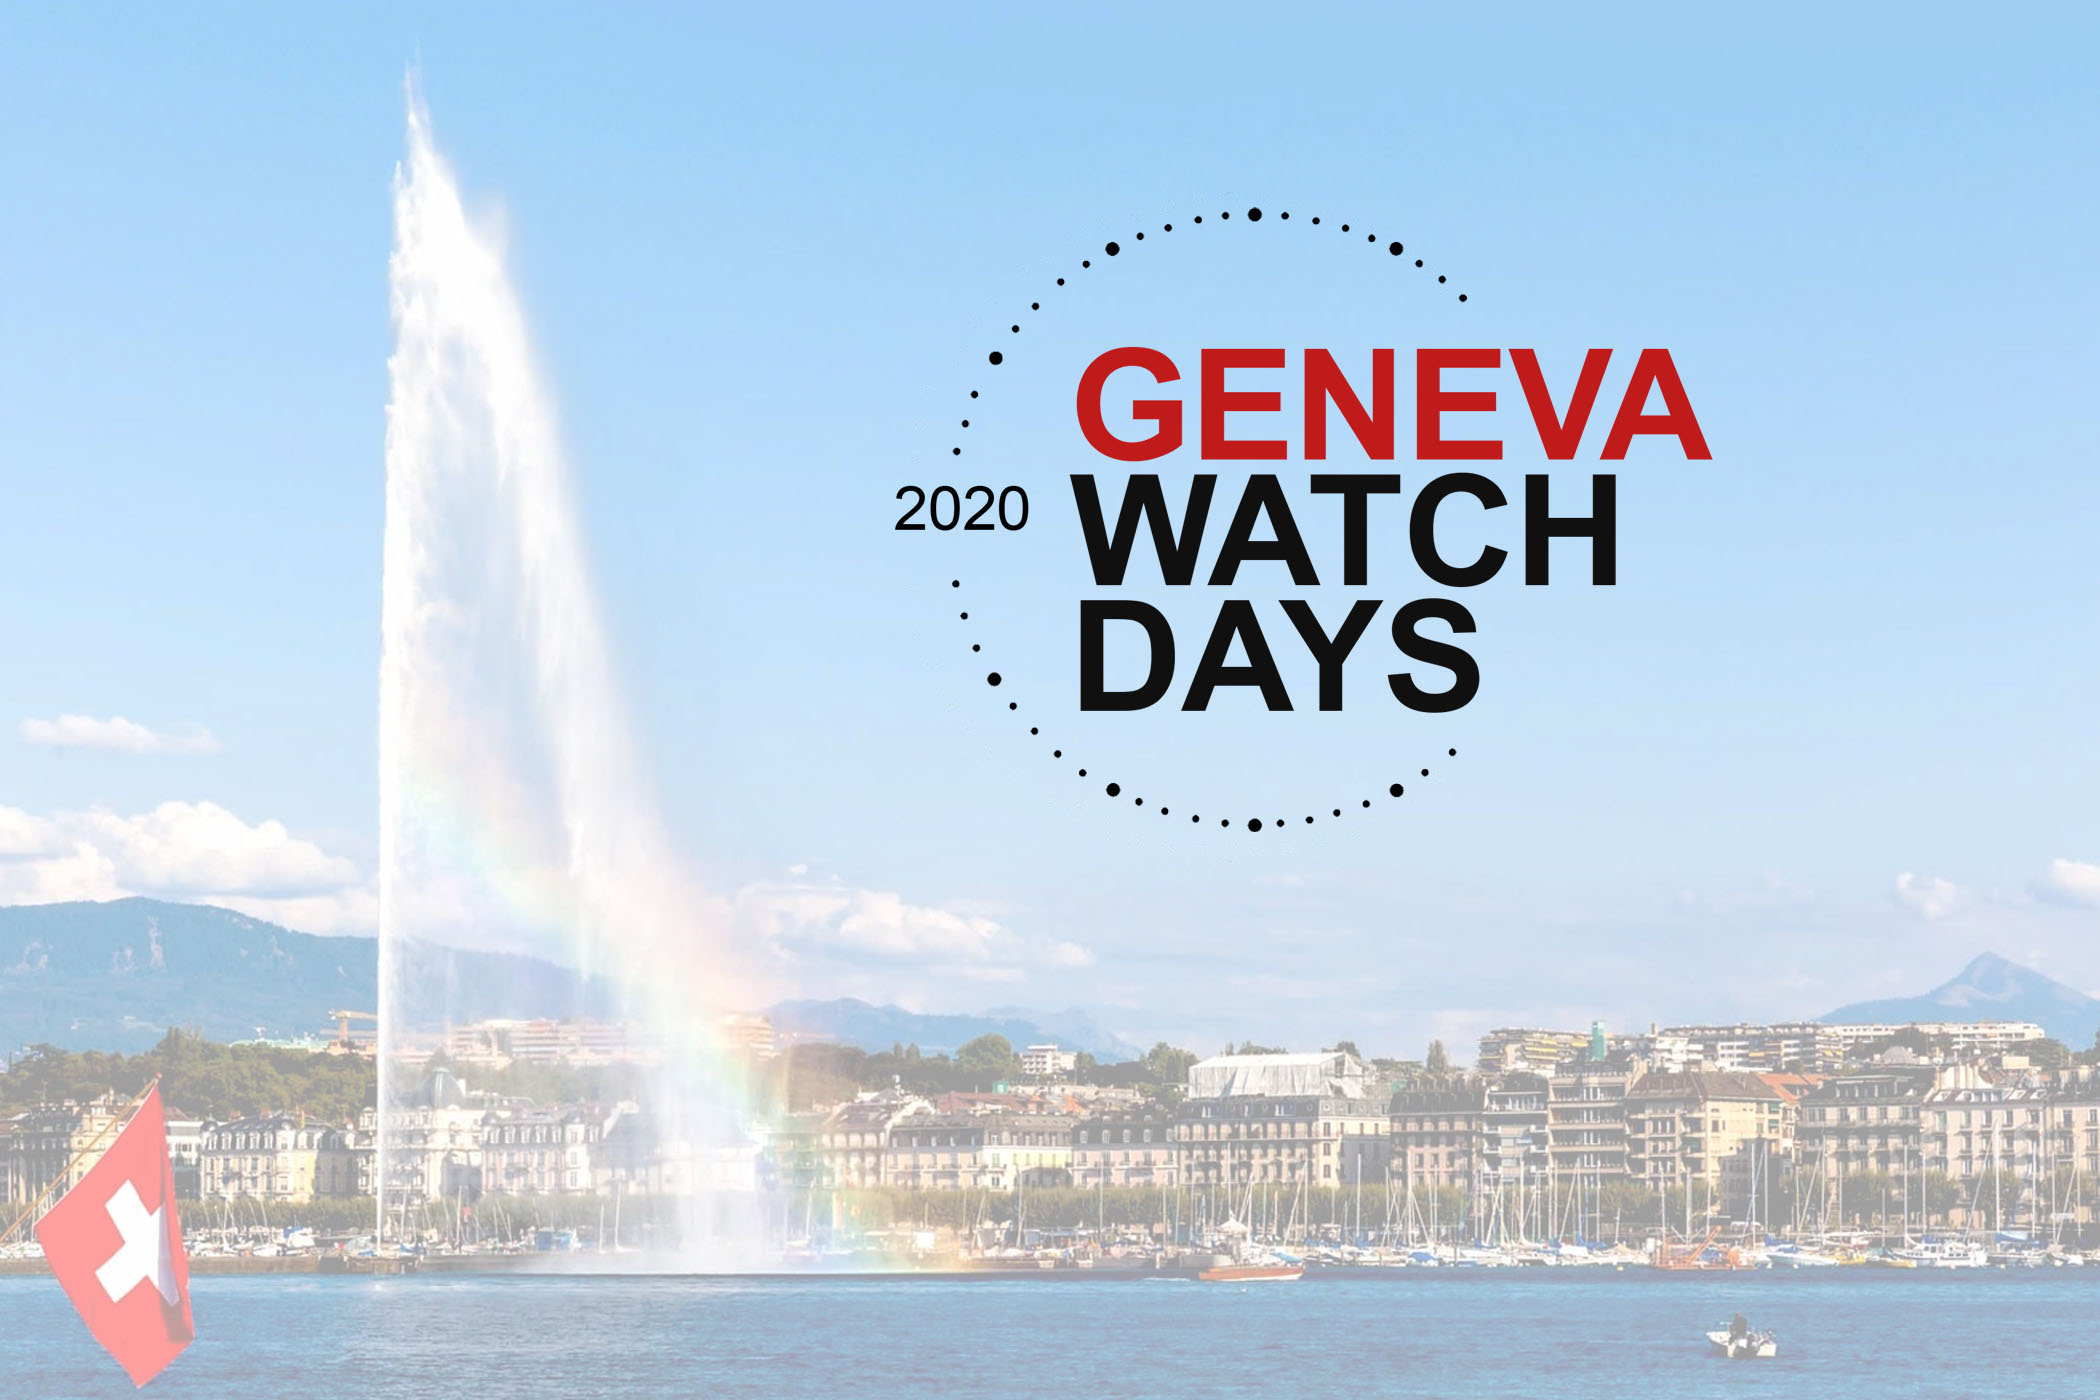 Breaking News - Major Swiss Watch Brands Unite to Create the First Geneva Watch Week April 2020